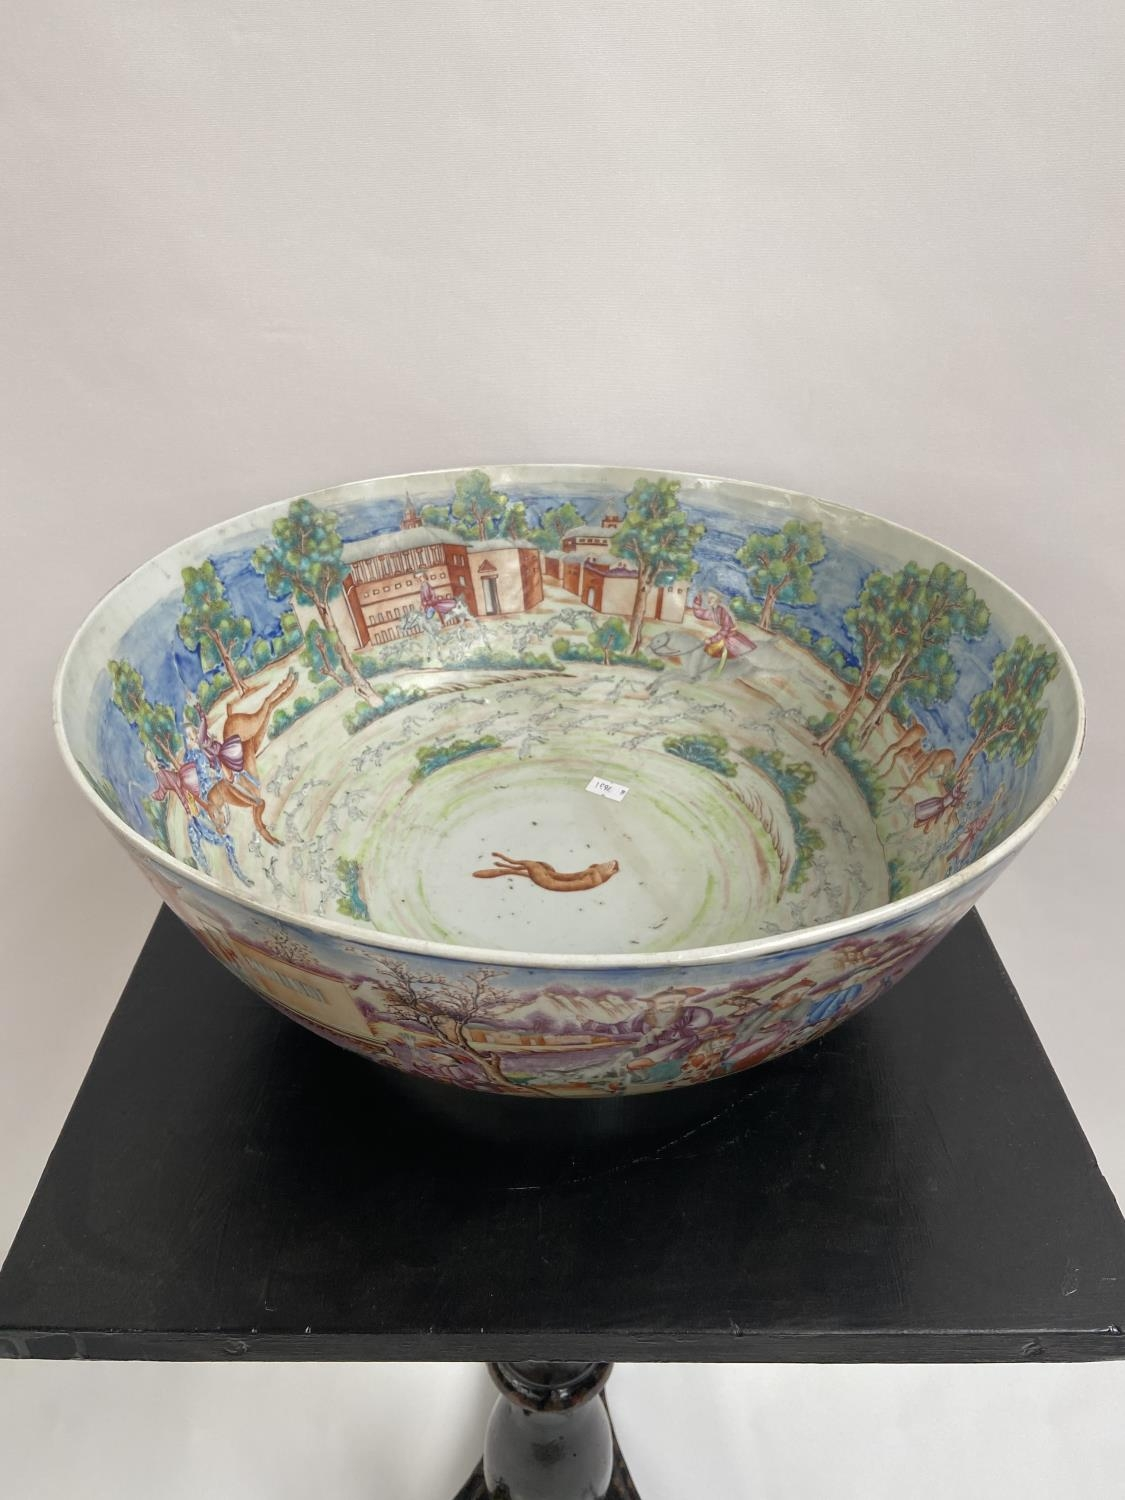 A LARGE 19TH CENTURY CHINESE HAND PAINTED BOWL. EXTERIOR DEPICTS CHINESE HUNTING SCENE PANELS. THE - Image 3 of 39